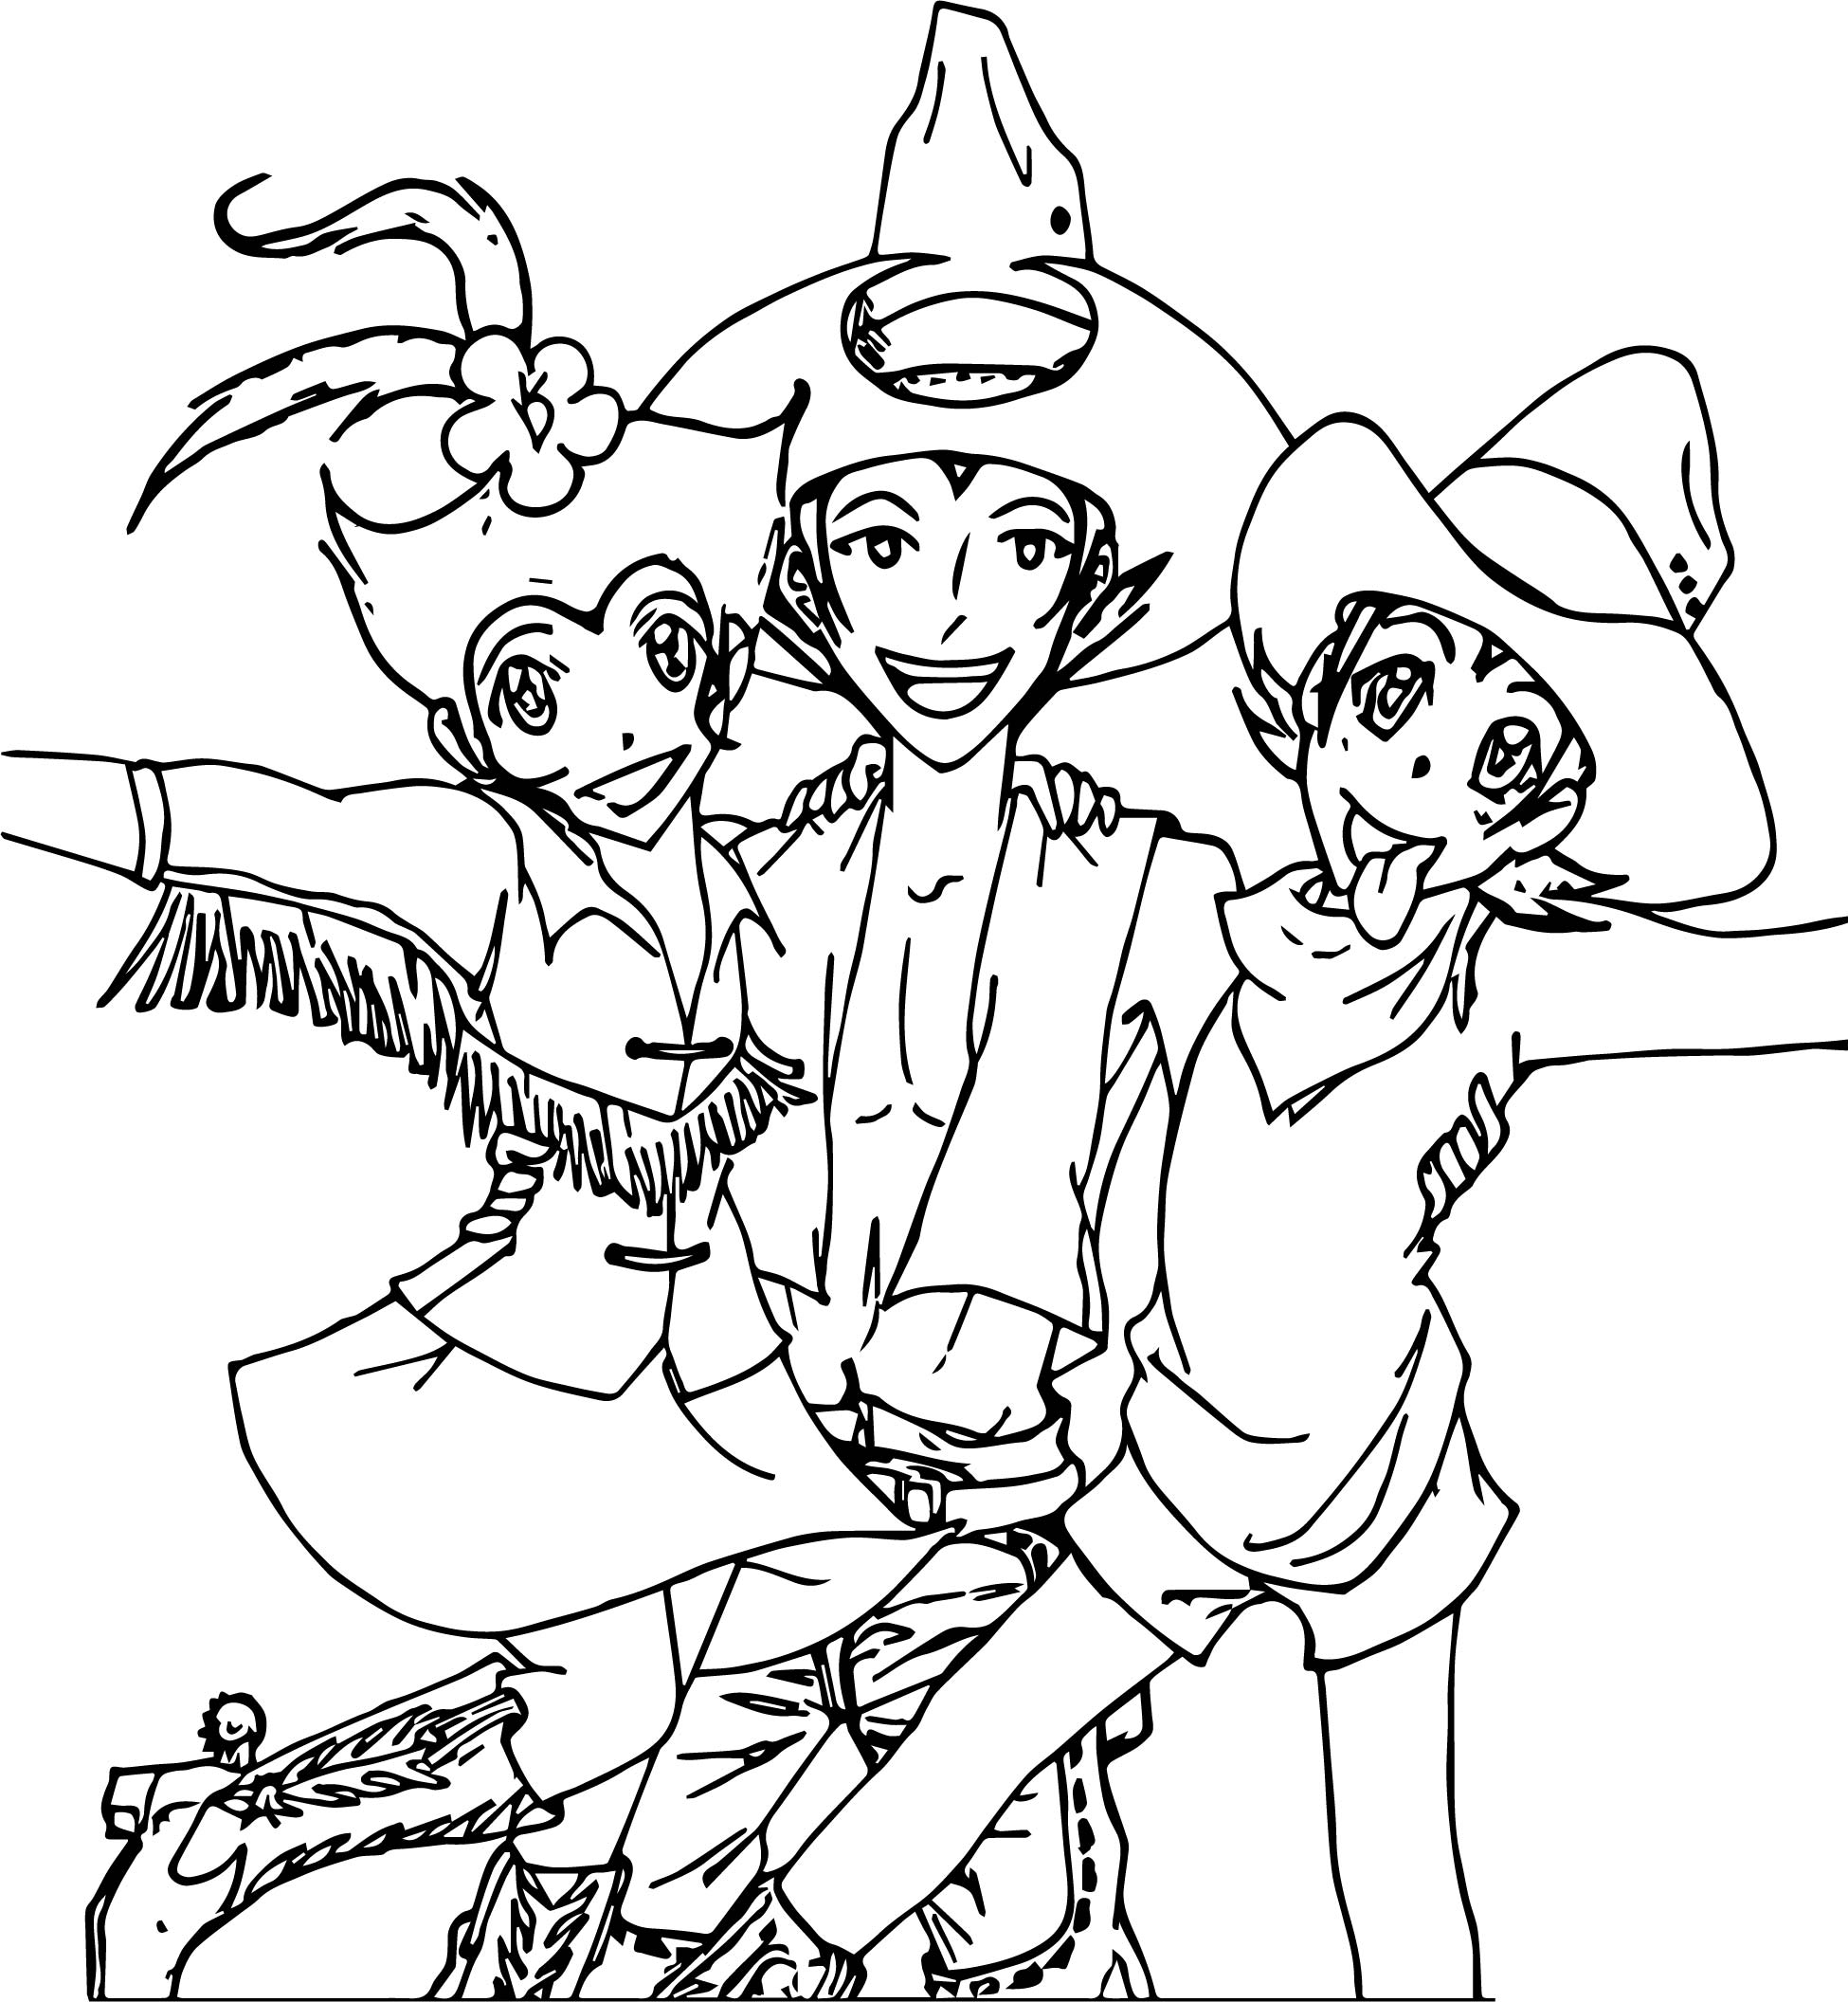 Animaniacs cowboys coloring pafge wecoloringpage for Animaniacs coloring pages